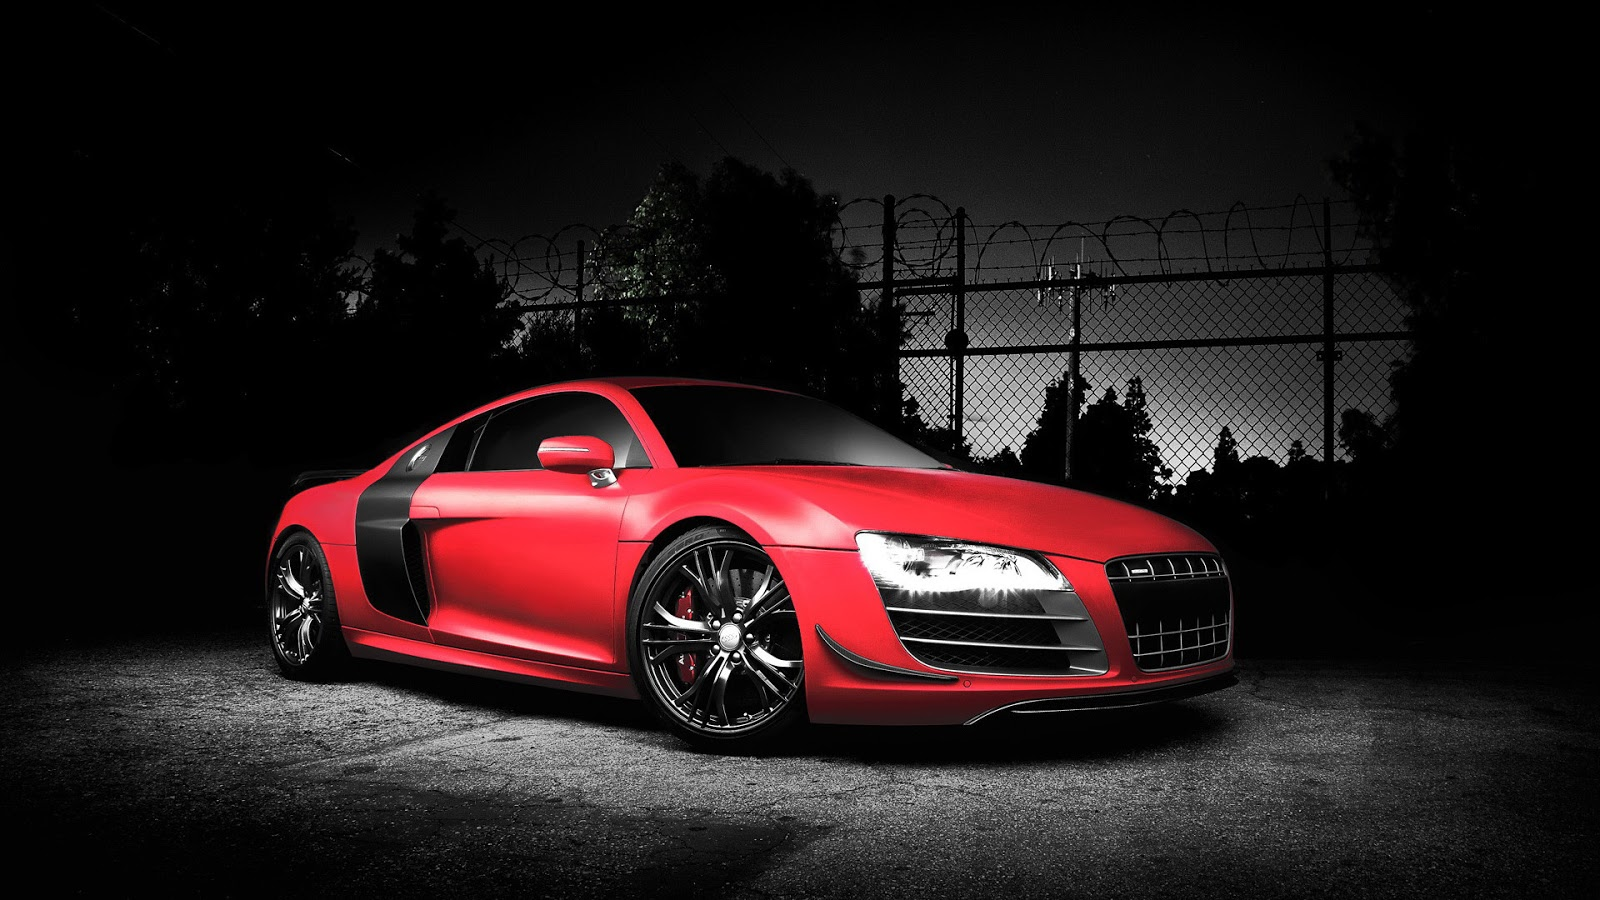 awesome car wallpapers hd awesome car wallpapers hd awesome car 1600x900